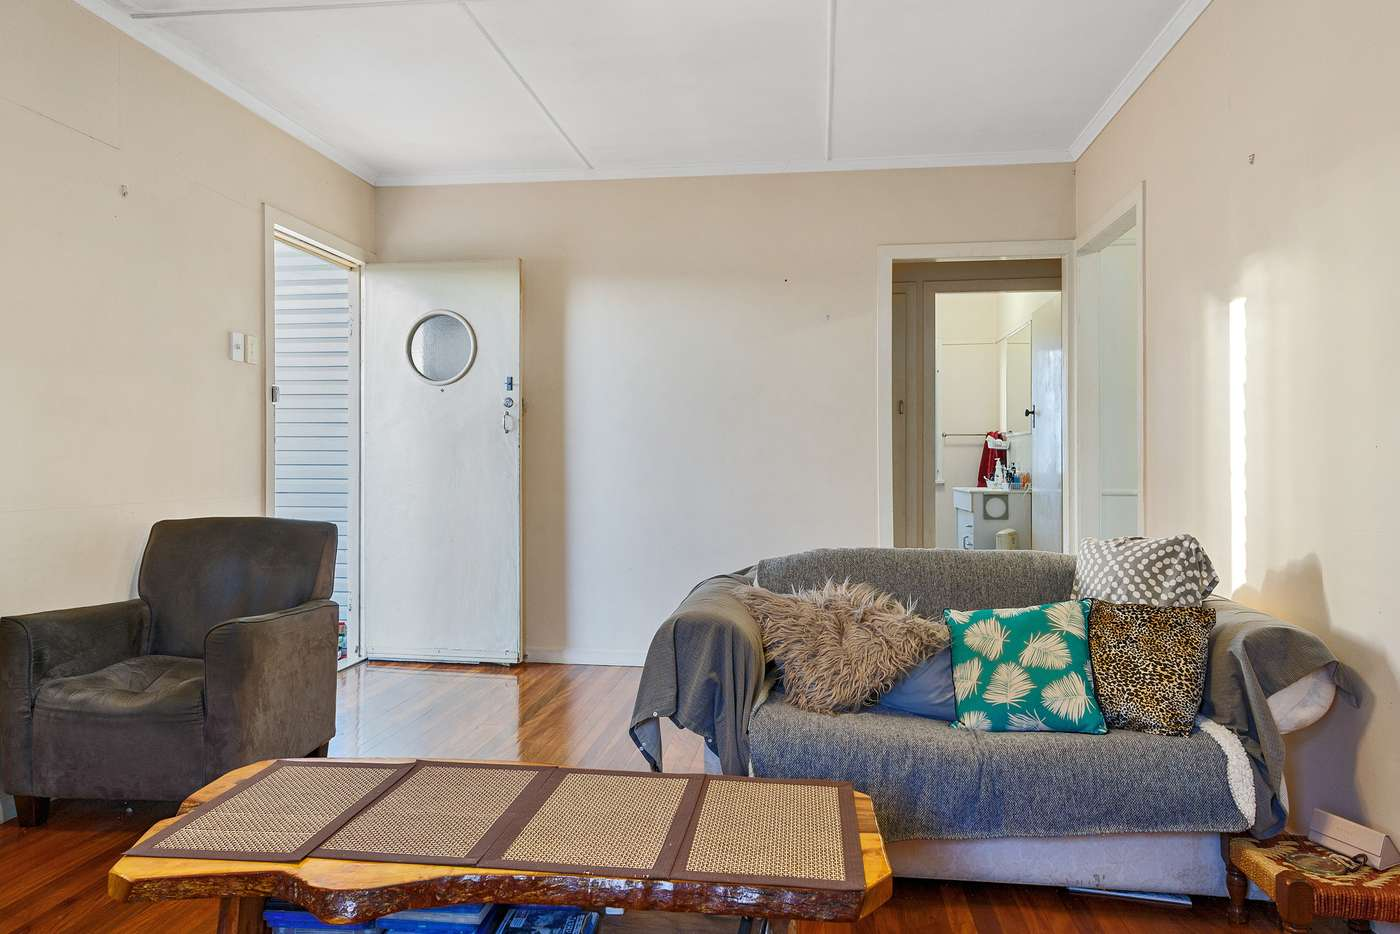 Fifth view of Homely house listing, 10 Brockhouse St, Upper Mount Gravatt QLD 4122